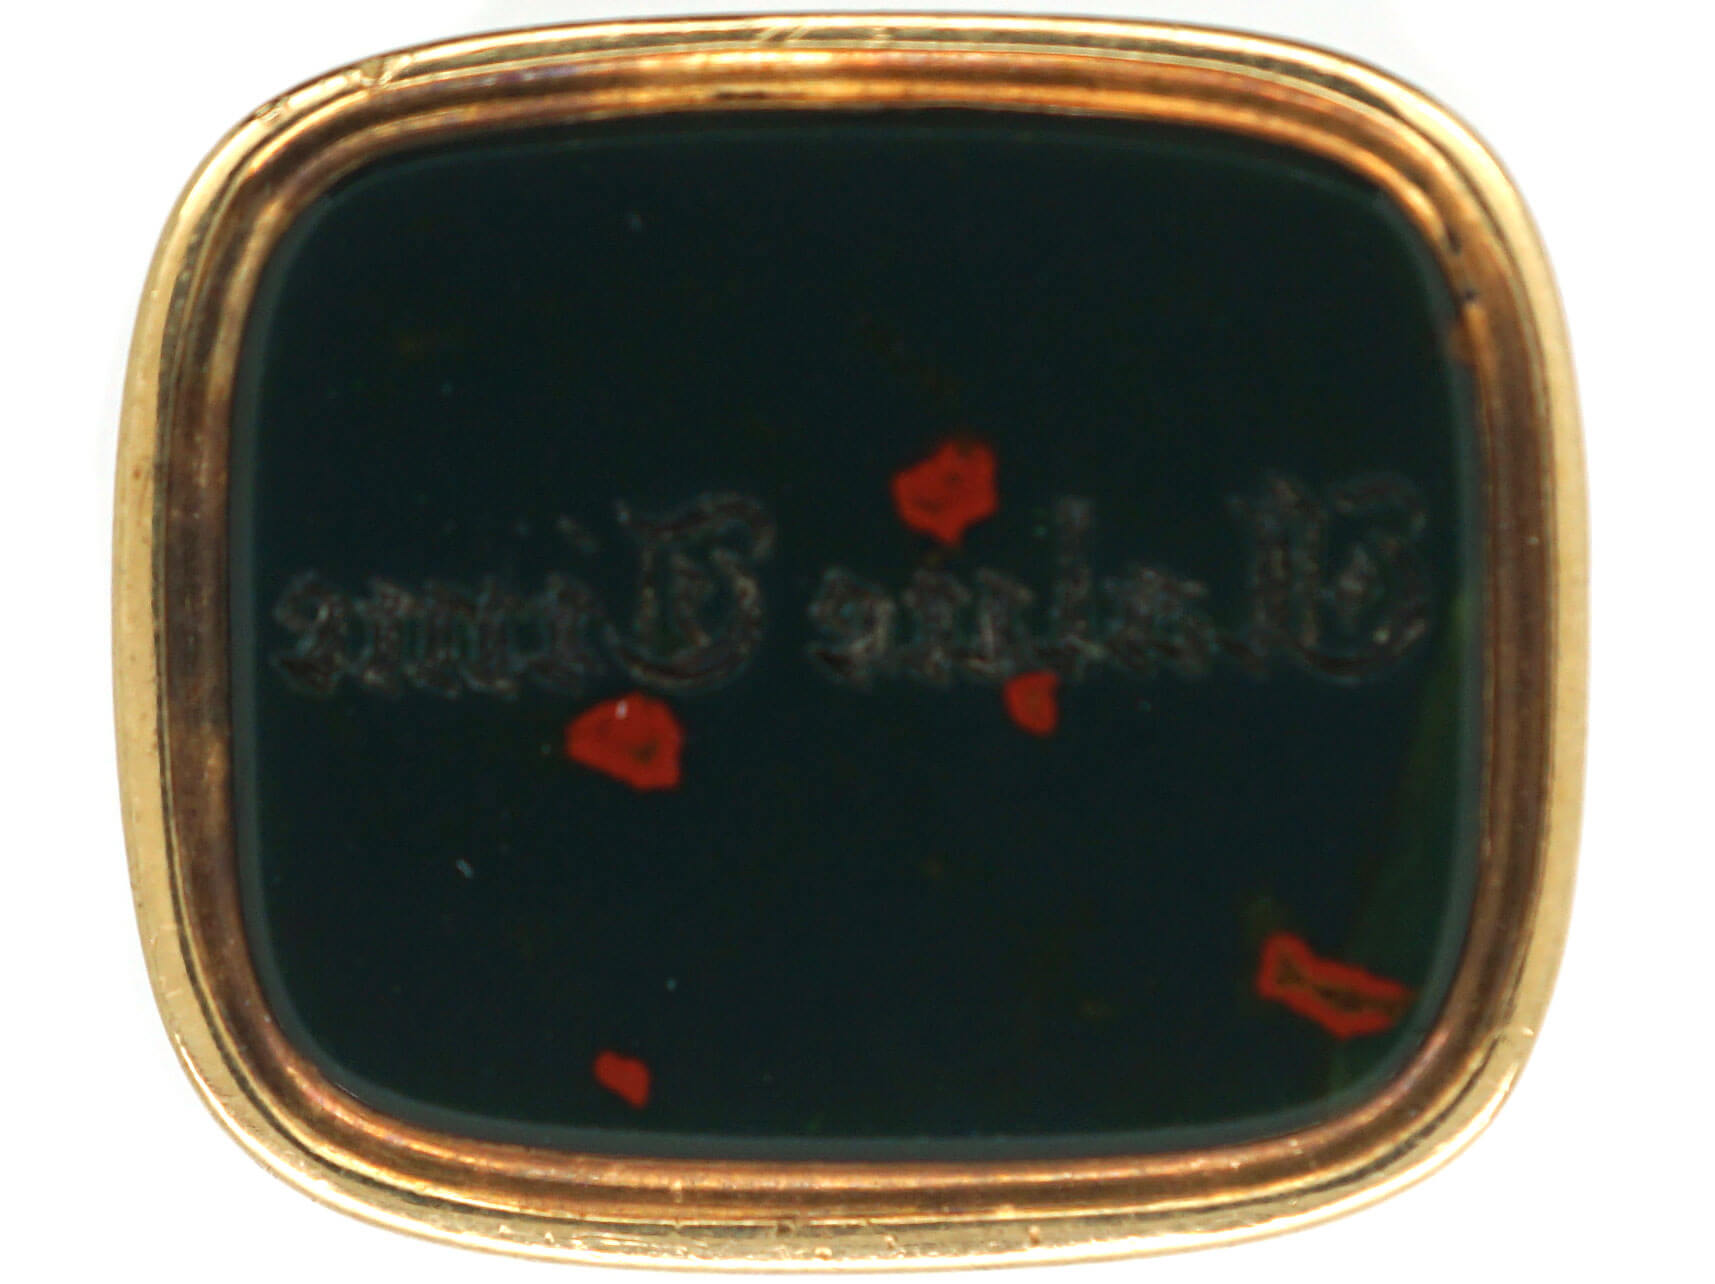 Georgian 18ct Gold Cased Gold Seal with Bloodstone Base Engraved with Value Time